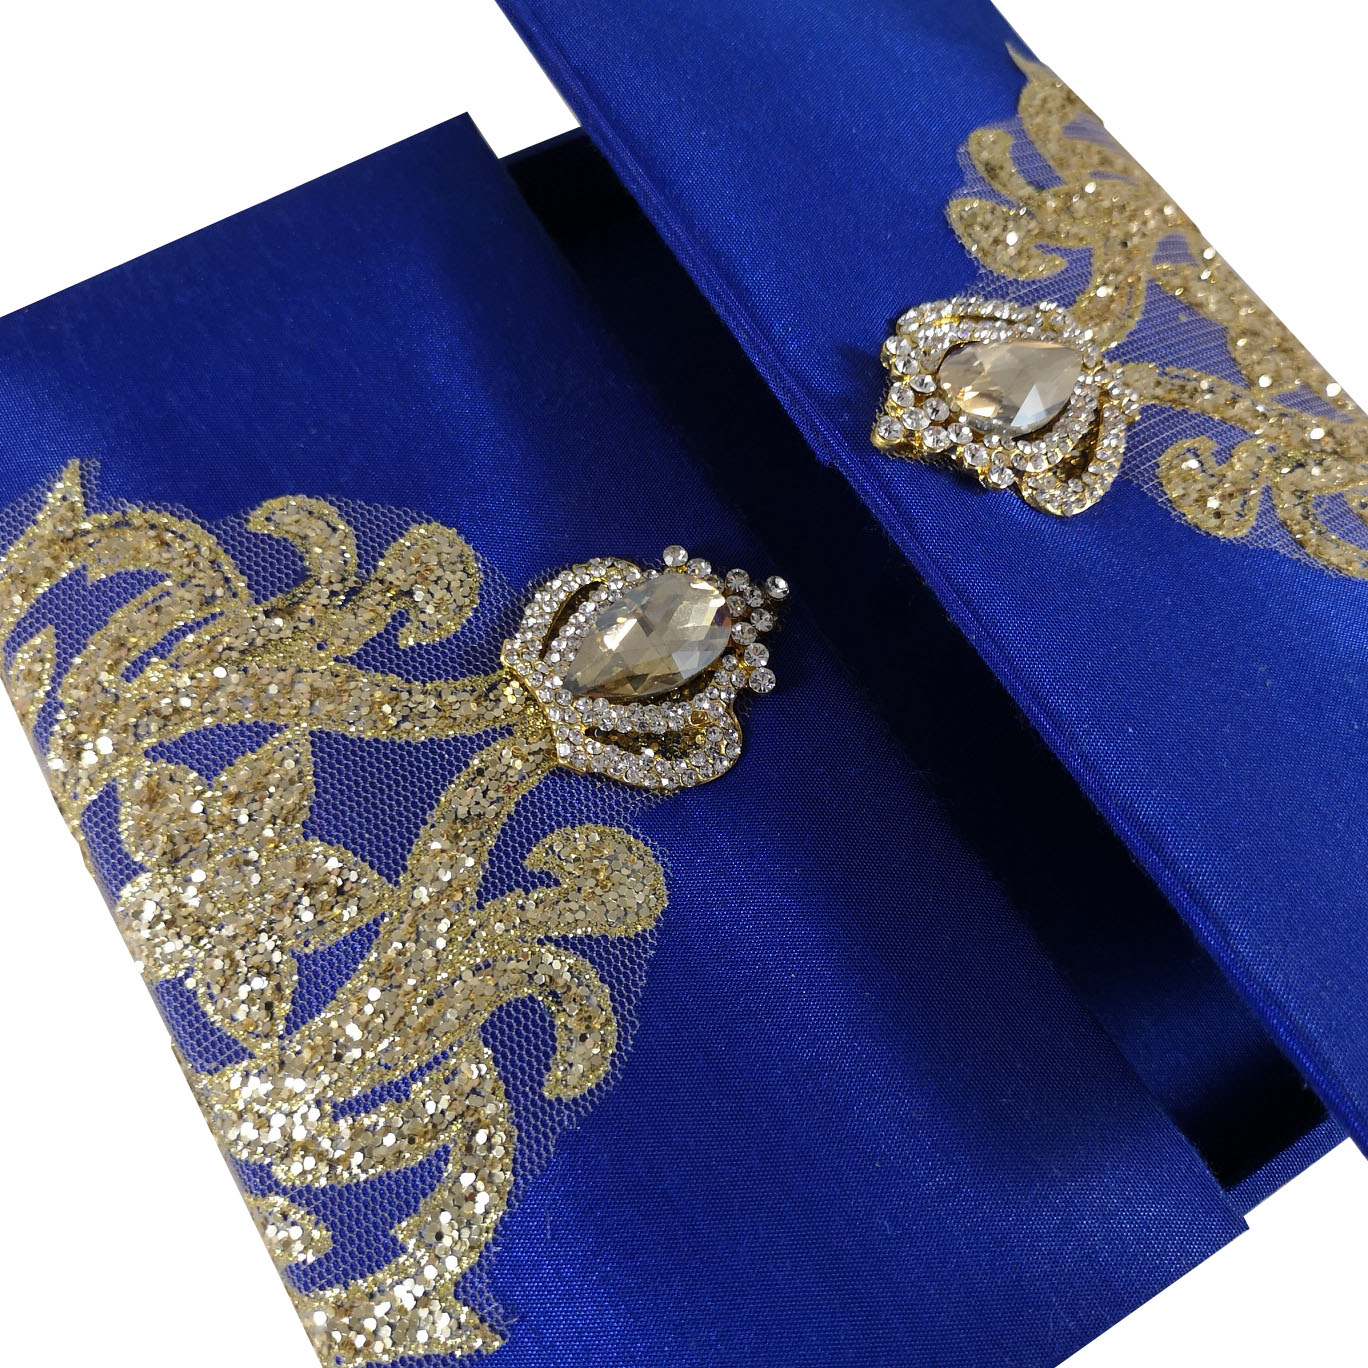 Crown brooch invitation with gold glitter and silk